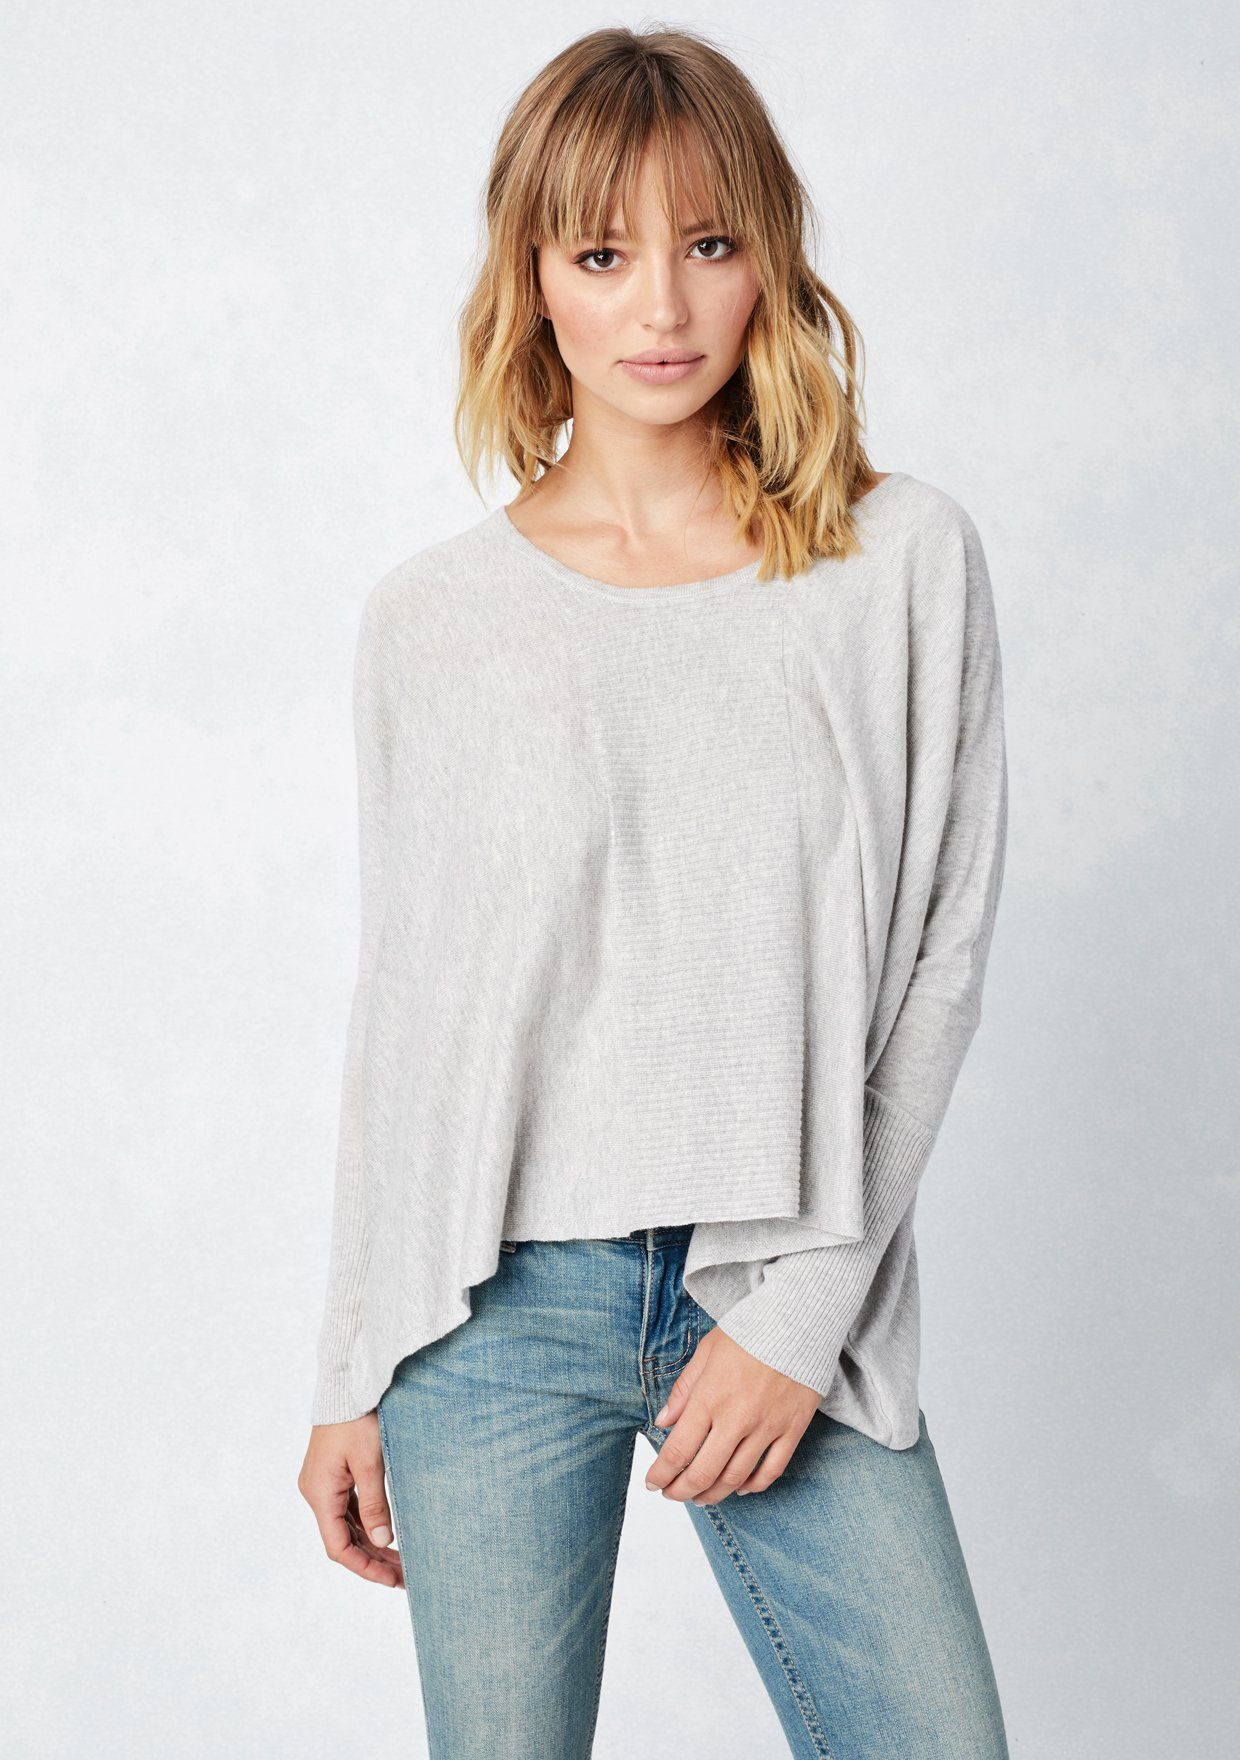 Amazon.com: Love Stitch - Cardigans / Sweaters: Clothing, Shoes ...